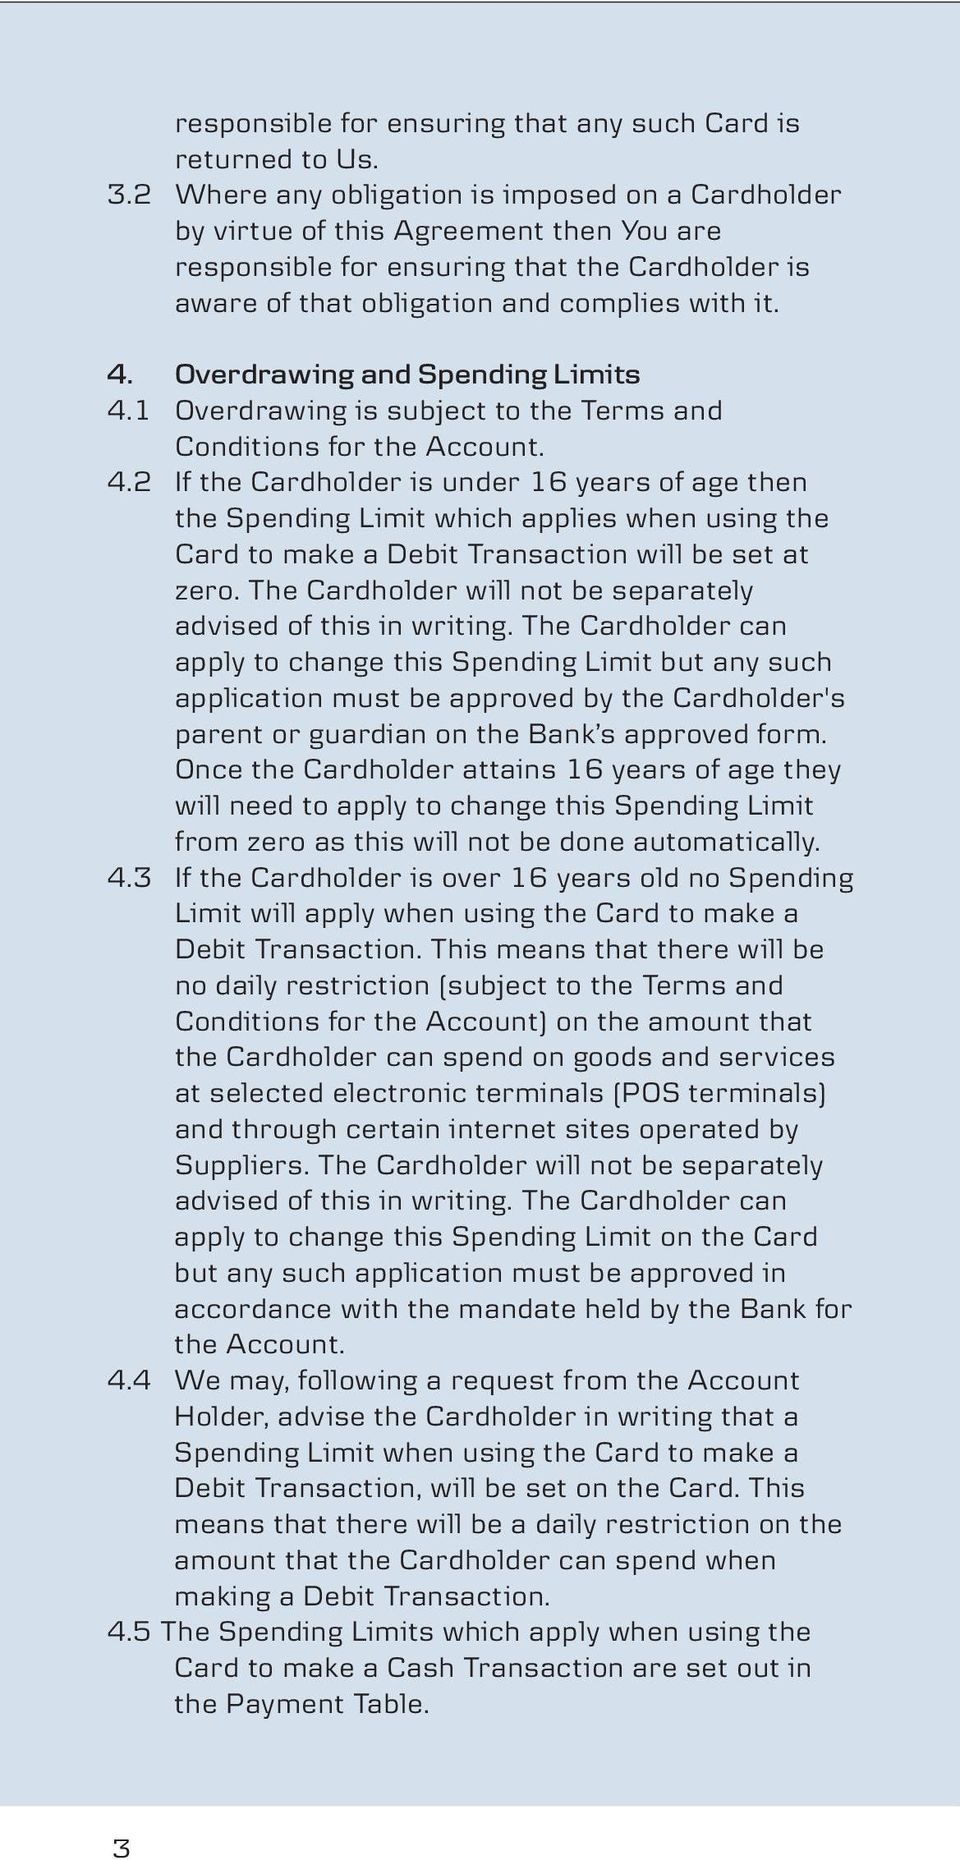 Overdrawing and Spending Limits 4.1 Overdrawing is subject to the Terms and Conditions for the Account. 4.2 If the Cardholder is under 16 years of age then the Spending Limit which applies when using the Card to make a Debit Transaction will be set at zero.